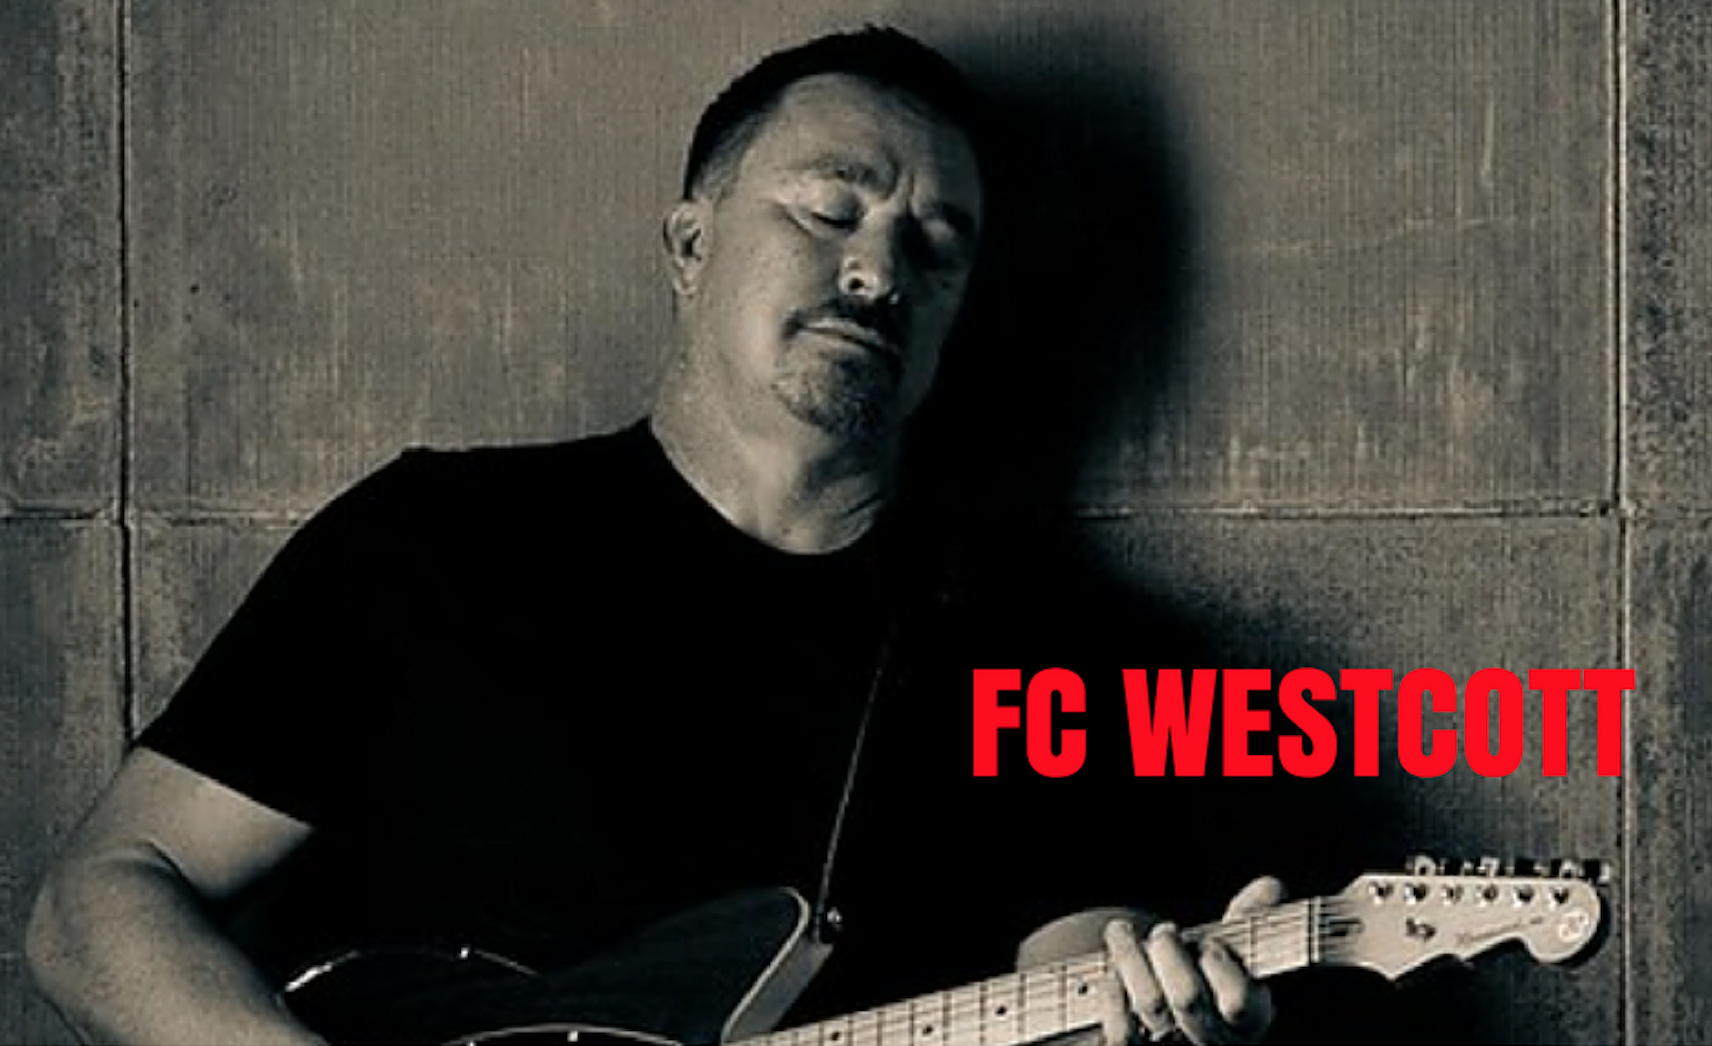 {Behind The Music} FC Westcott on Someone Else's Arms